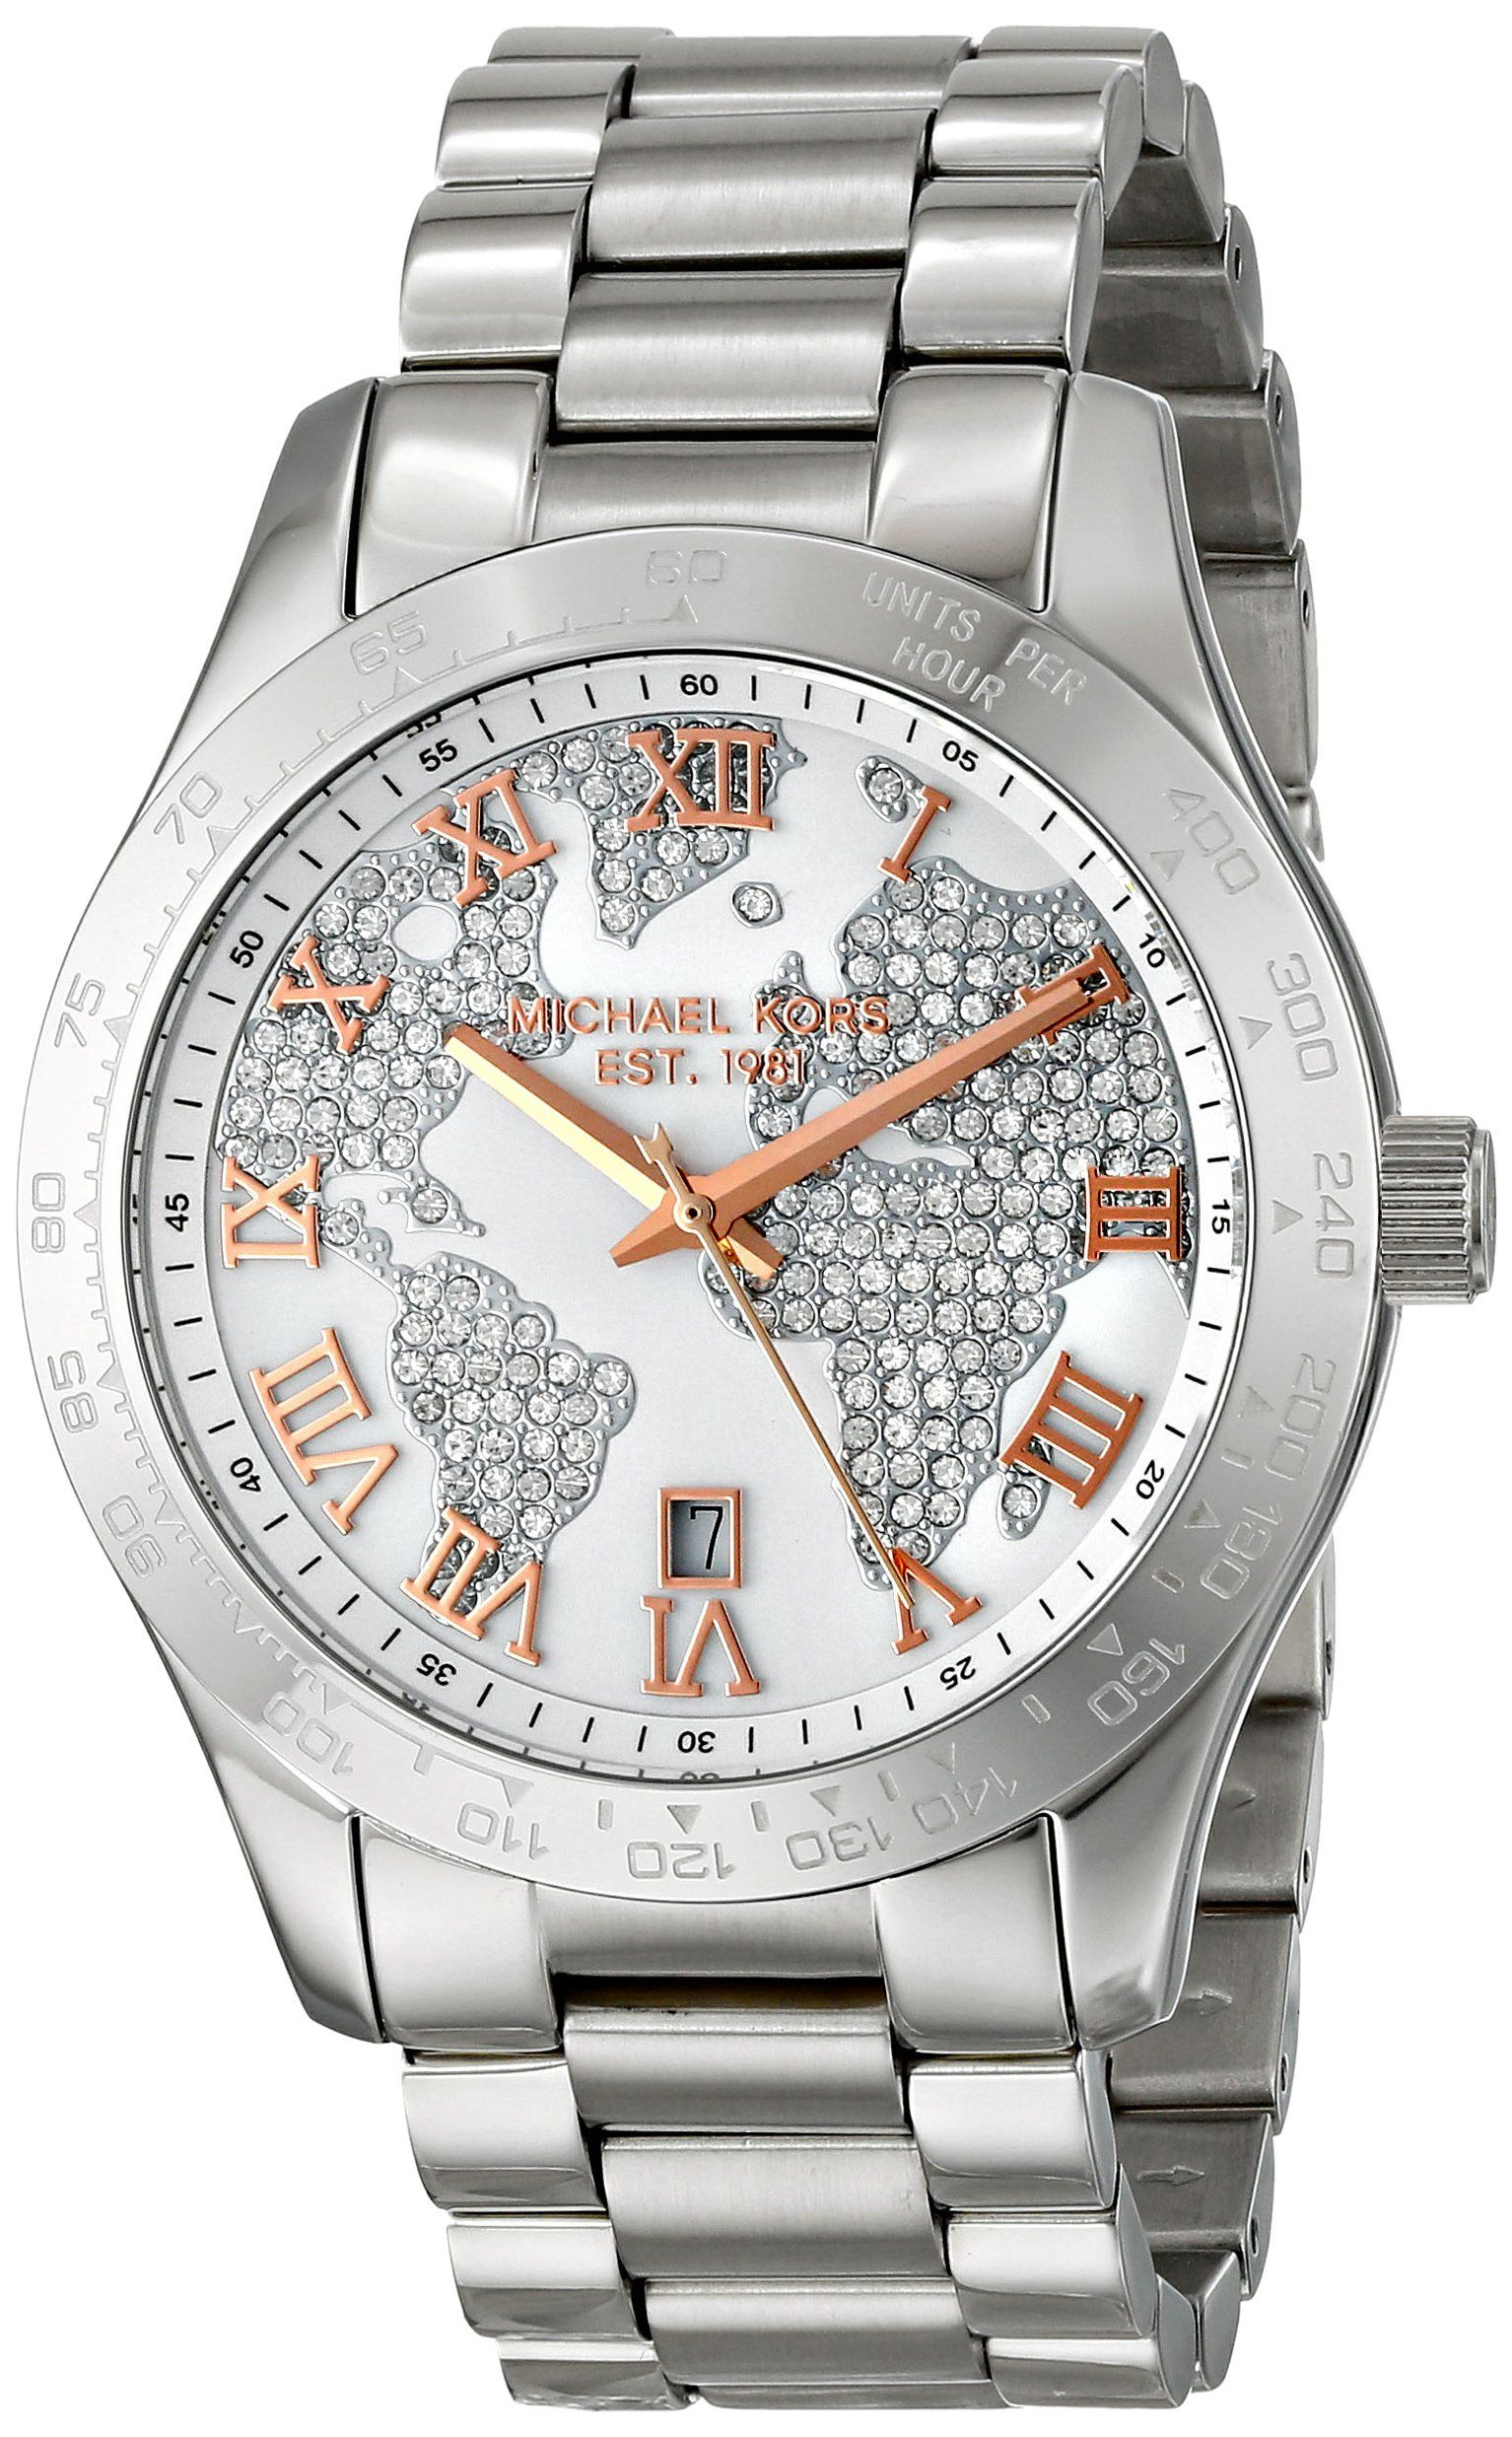 d44a11457794 Michael Kors Layton Silver Crystal Pave Dial Stainless Streel Ladies Watch  MK5958 --- This is my absolute dream watch right now.